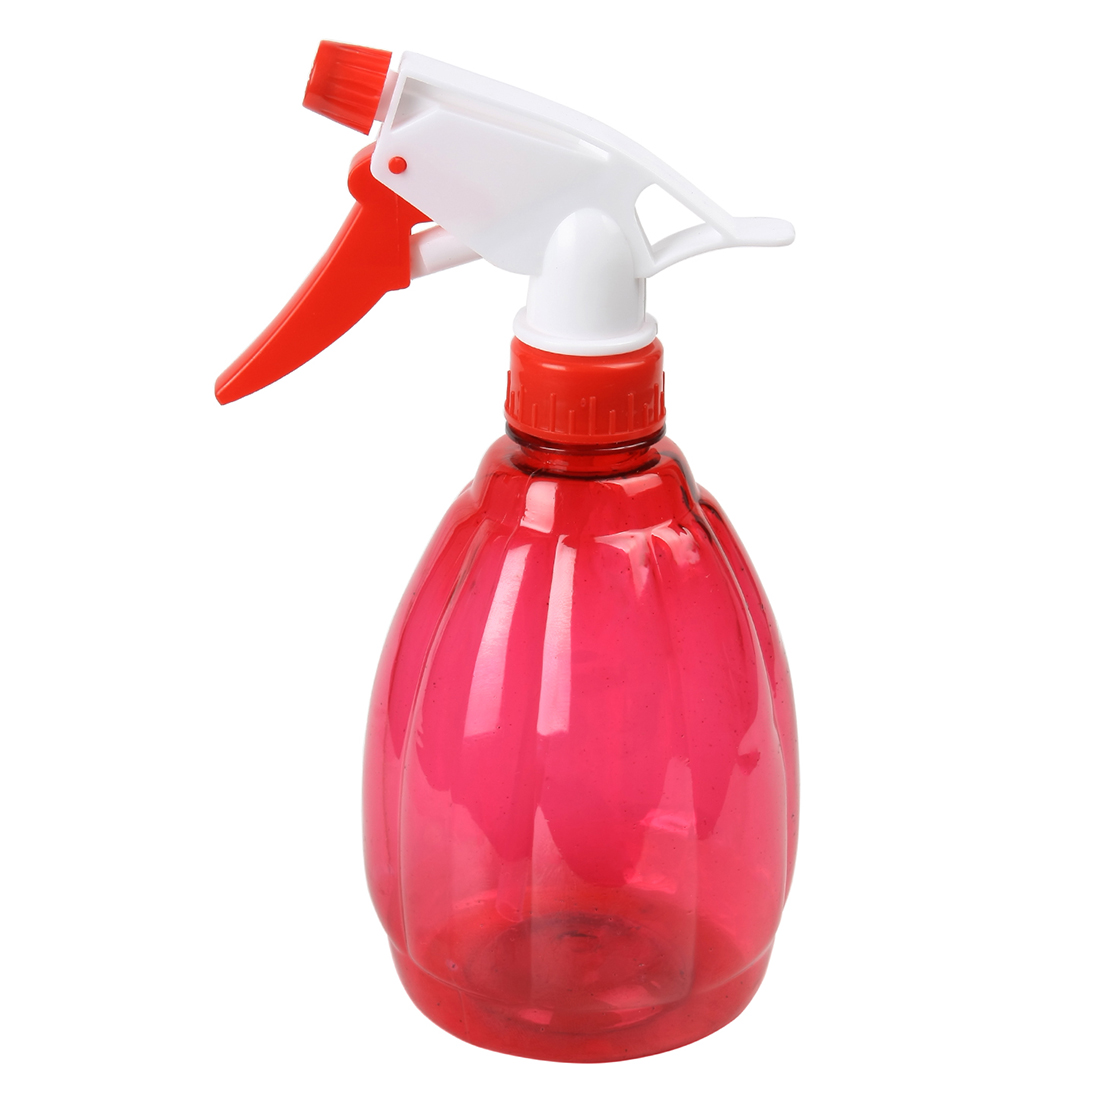 Unique Bargains Plastic Refillable Flower Plant Spray Bottle Water Sprayer Red